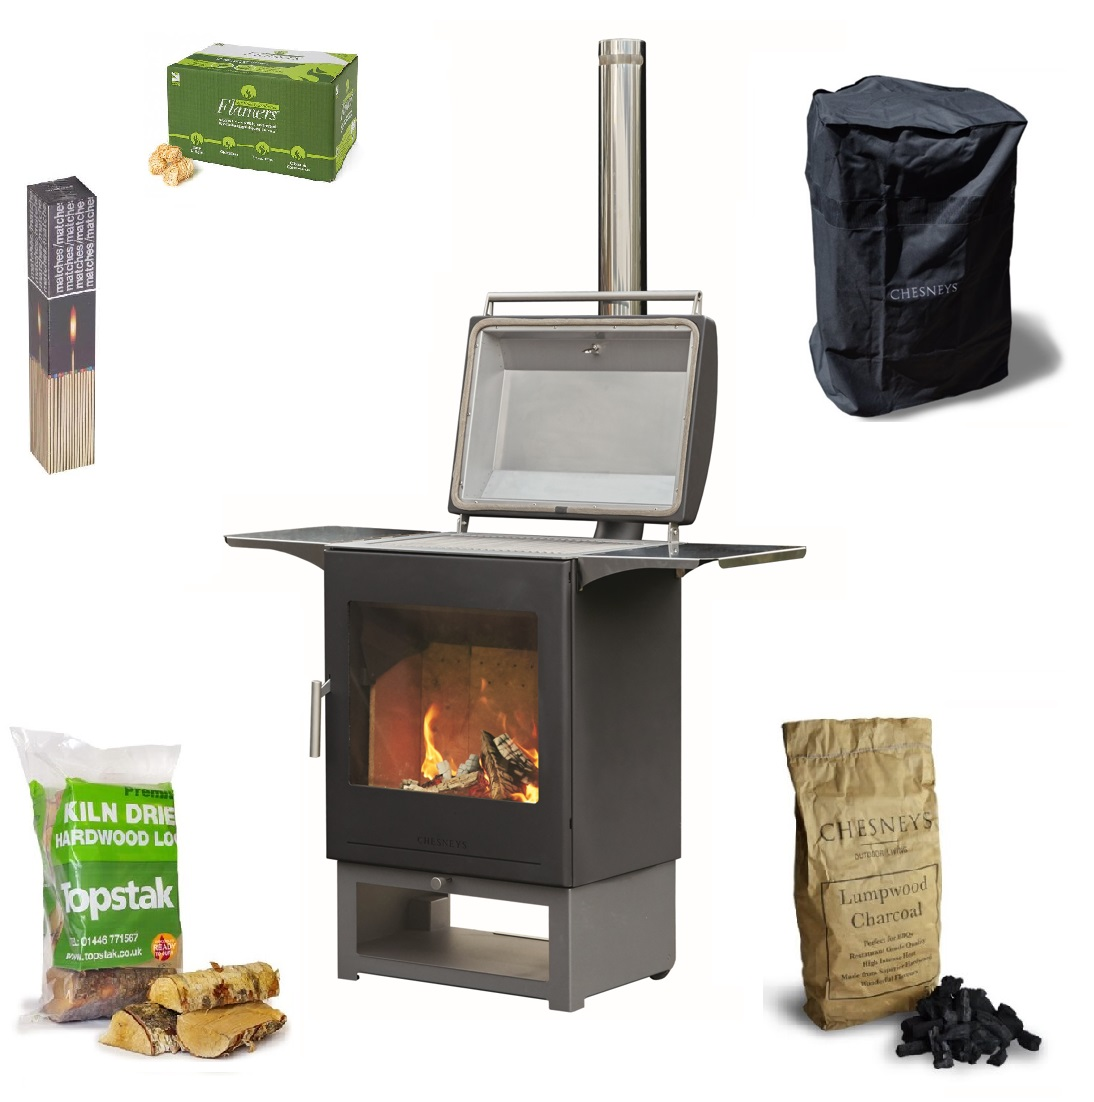 Chesneys Heat and Grill BBQ Bundle